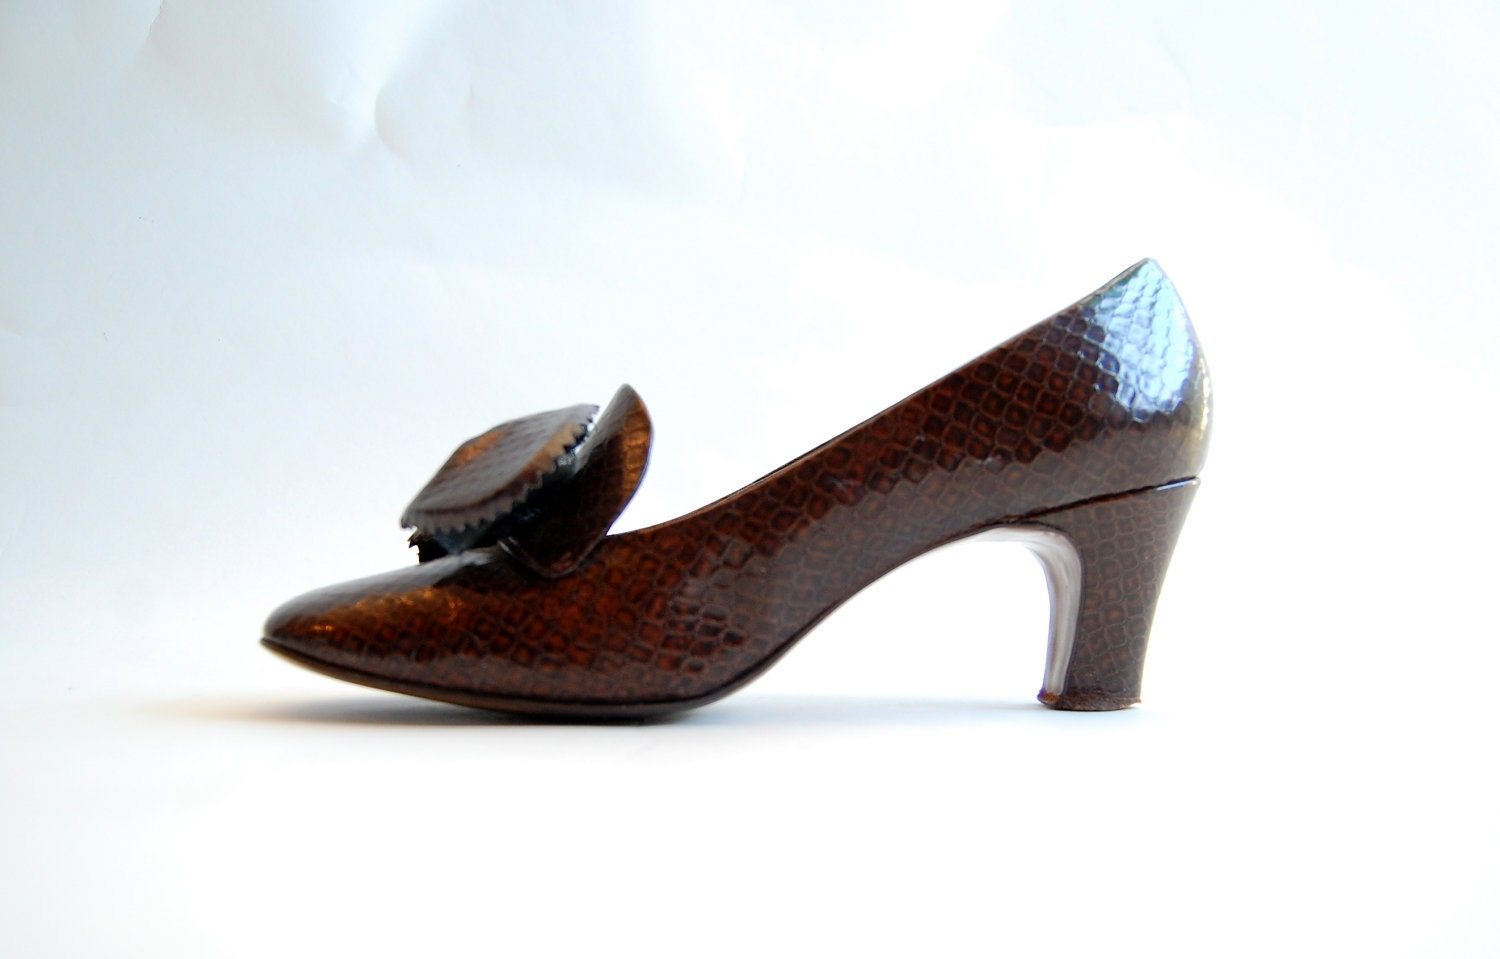 Vintage 1960s Shoes 60s Brown Shoes Faux Snakeskin with